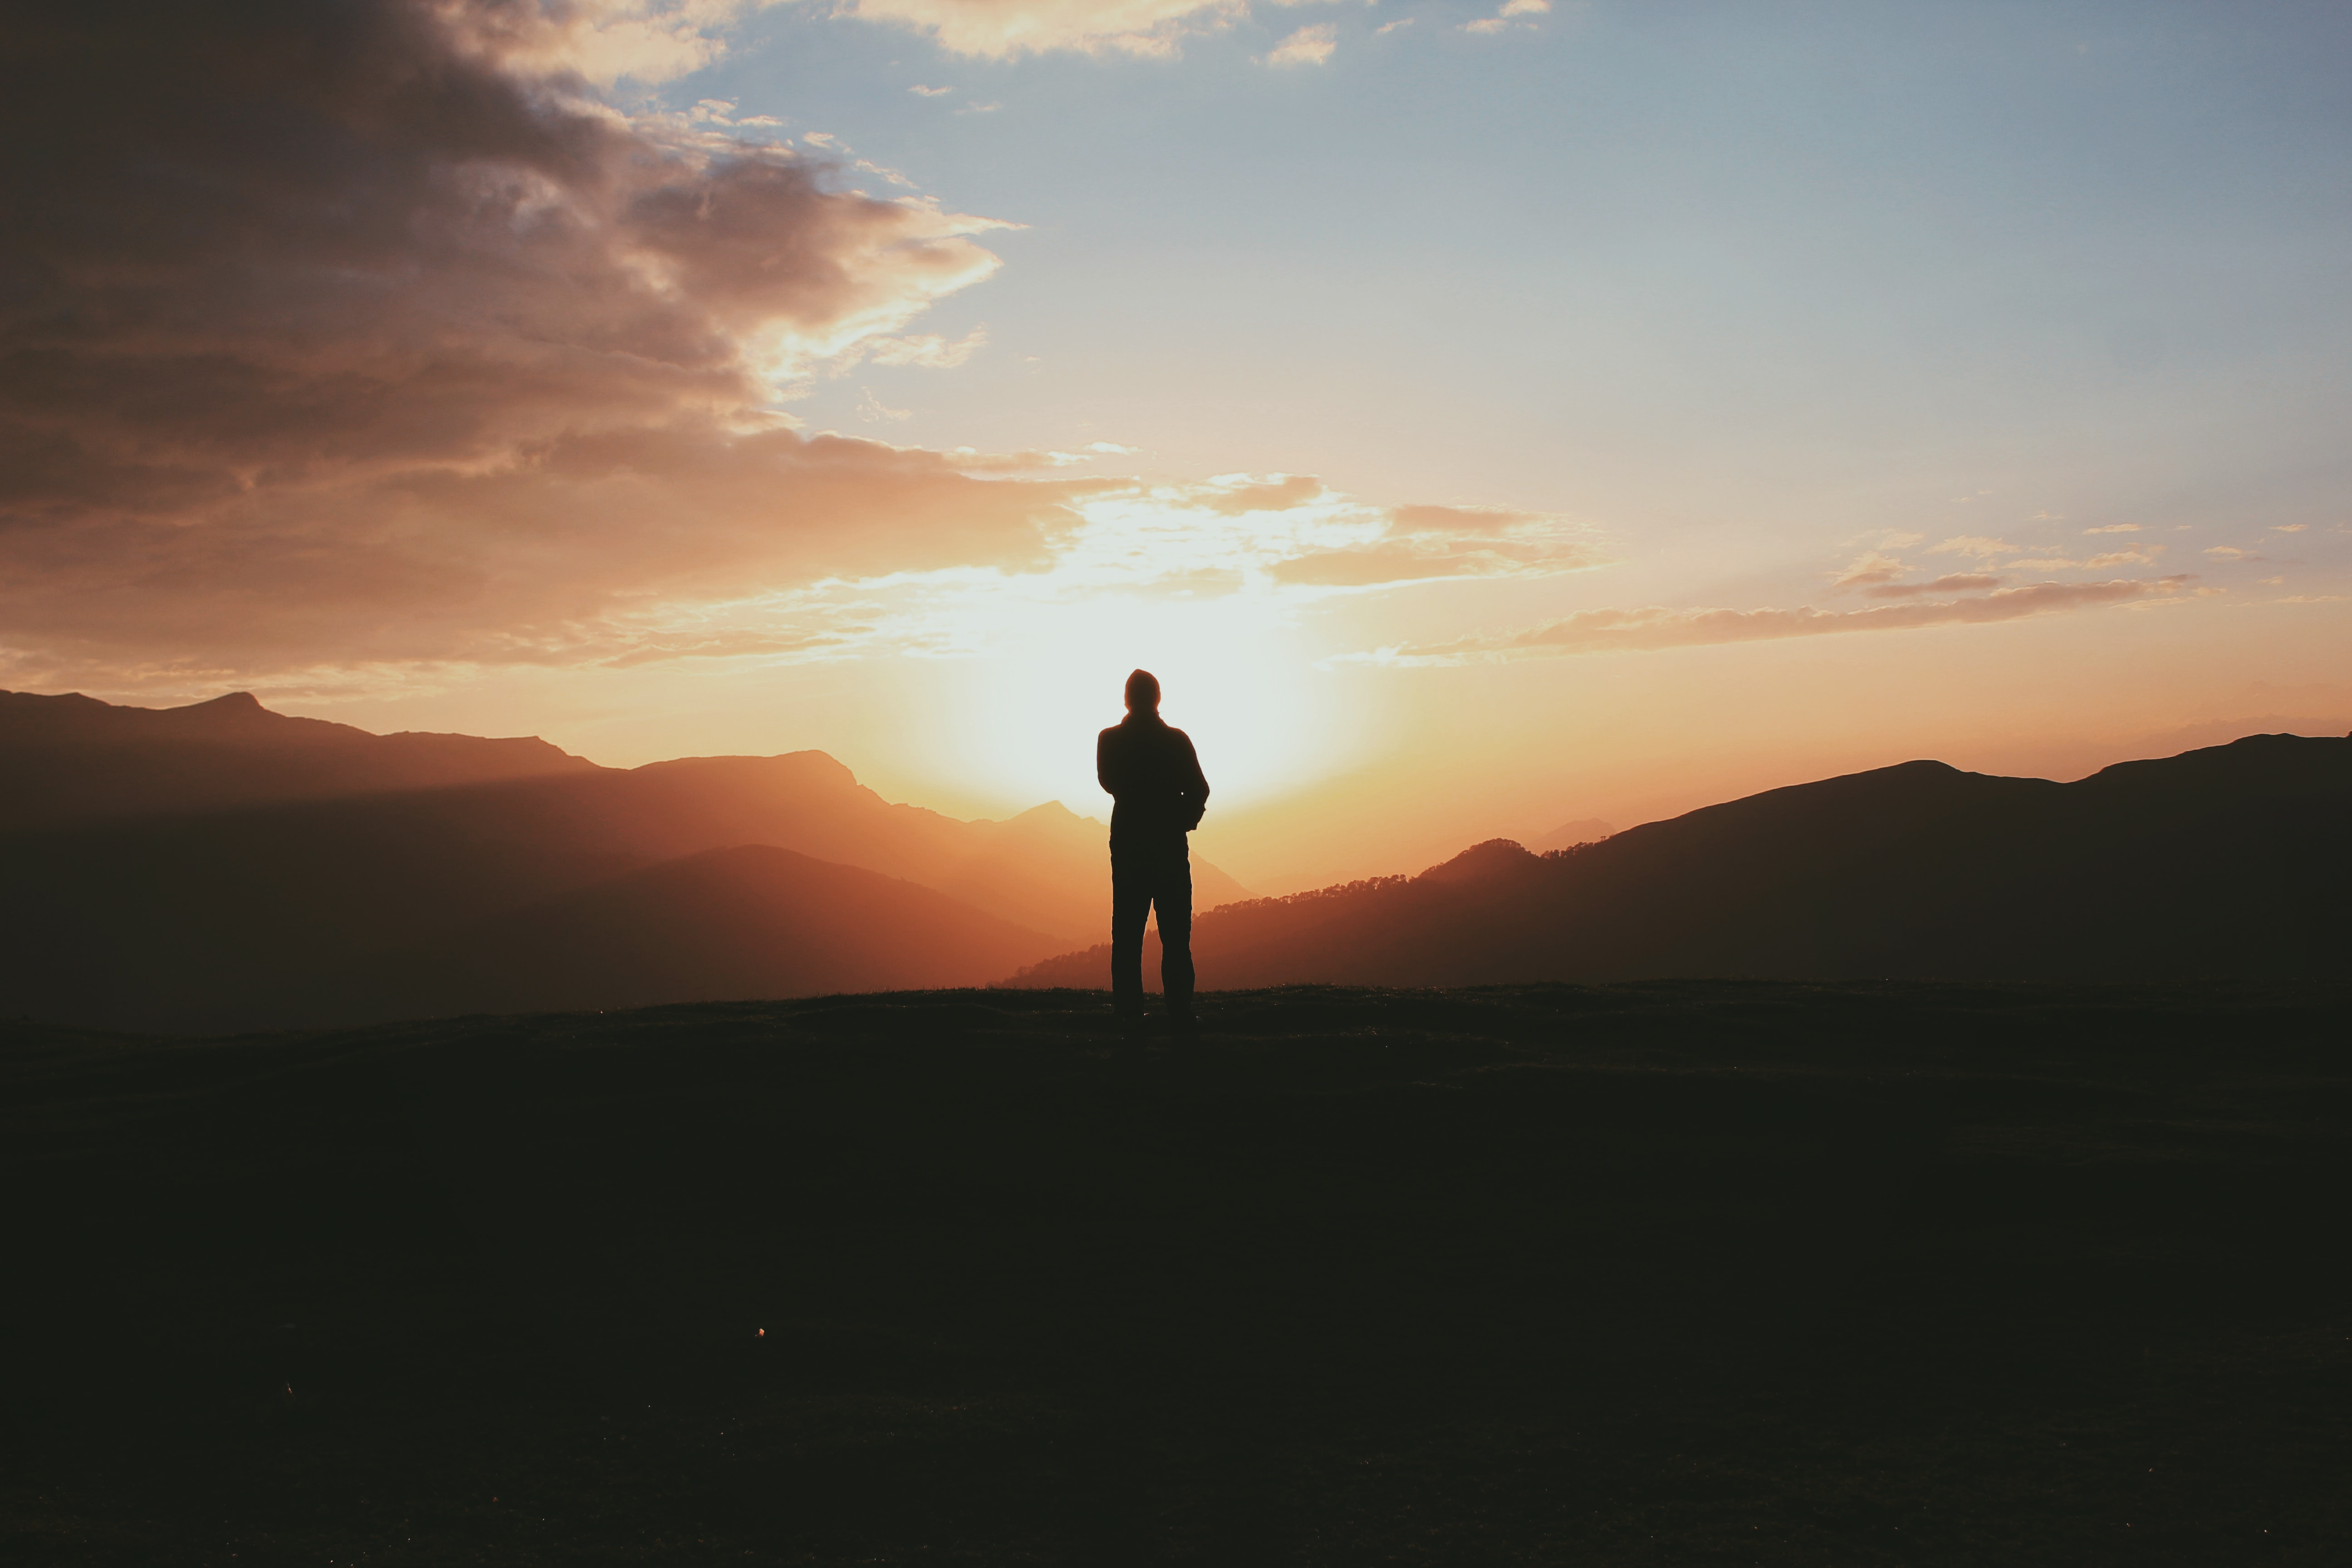 silhouette photo of man standing on mountain during golden hour